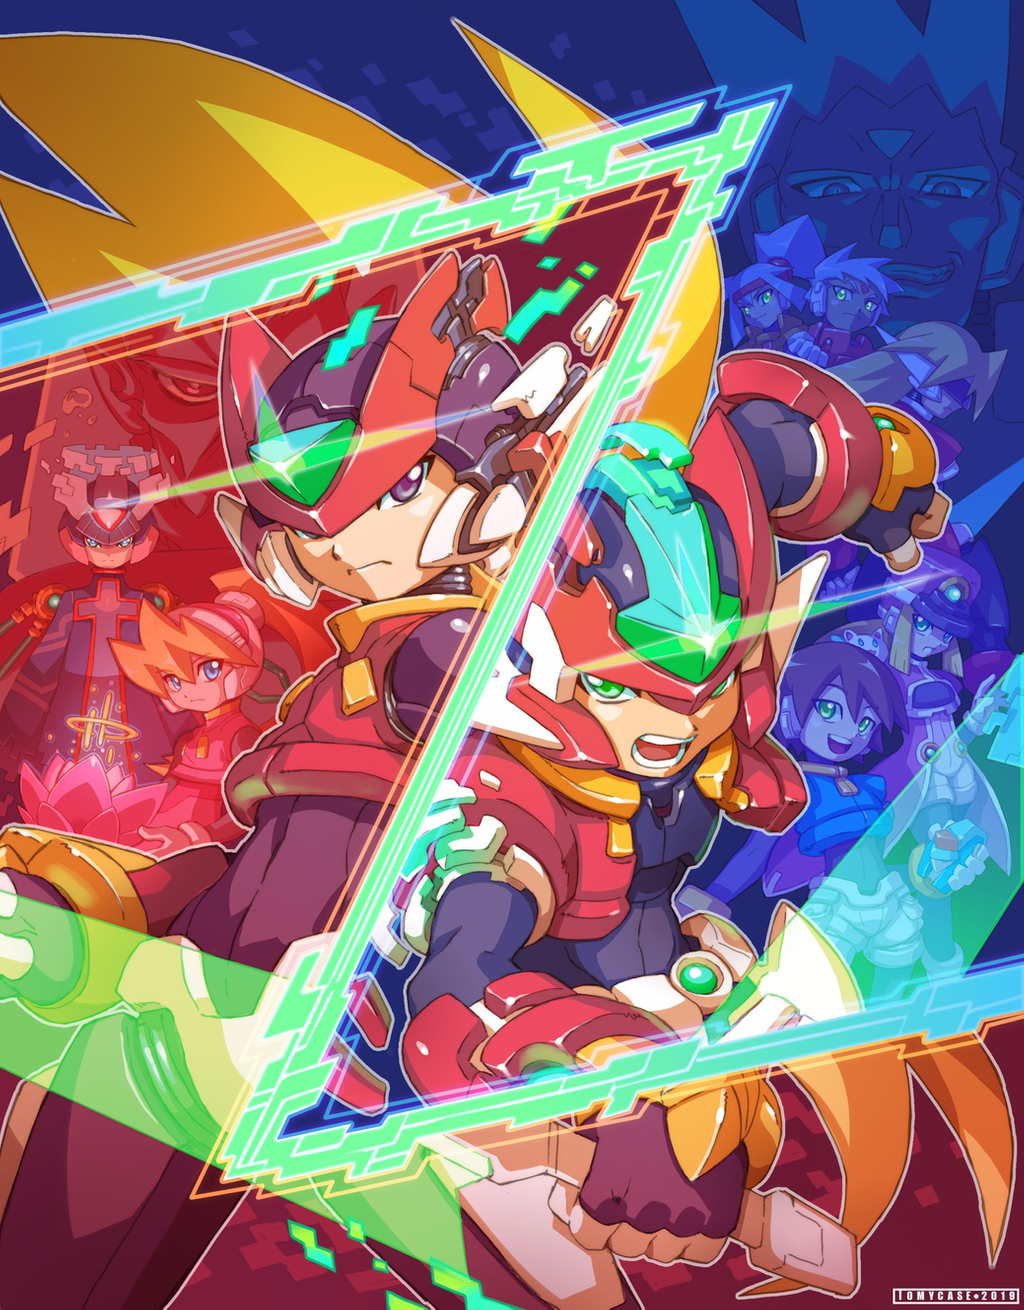 4girls 6+boys aile android ashe_(rockman) blonde_hair blue_eyes brown_hair ciel_(rockman) closed_mouth commentary energy_sword english_commentary girouette grey_(rockman) grey_hair helmet highres holding holding_weapon livemetal long_hair model_zx multiple_boys multiple_girls official_style open_mouth ponytail power_armor prairie rockman rockman_zero rockman_zx rockman_zx_advent serpent_(rockman_zx) short_hair sword tomycase vent weapon x_(rockman) zero_(rockman)